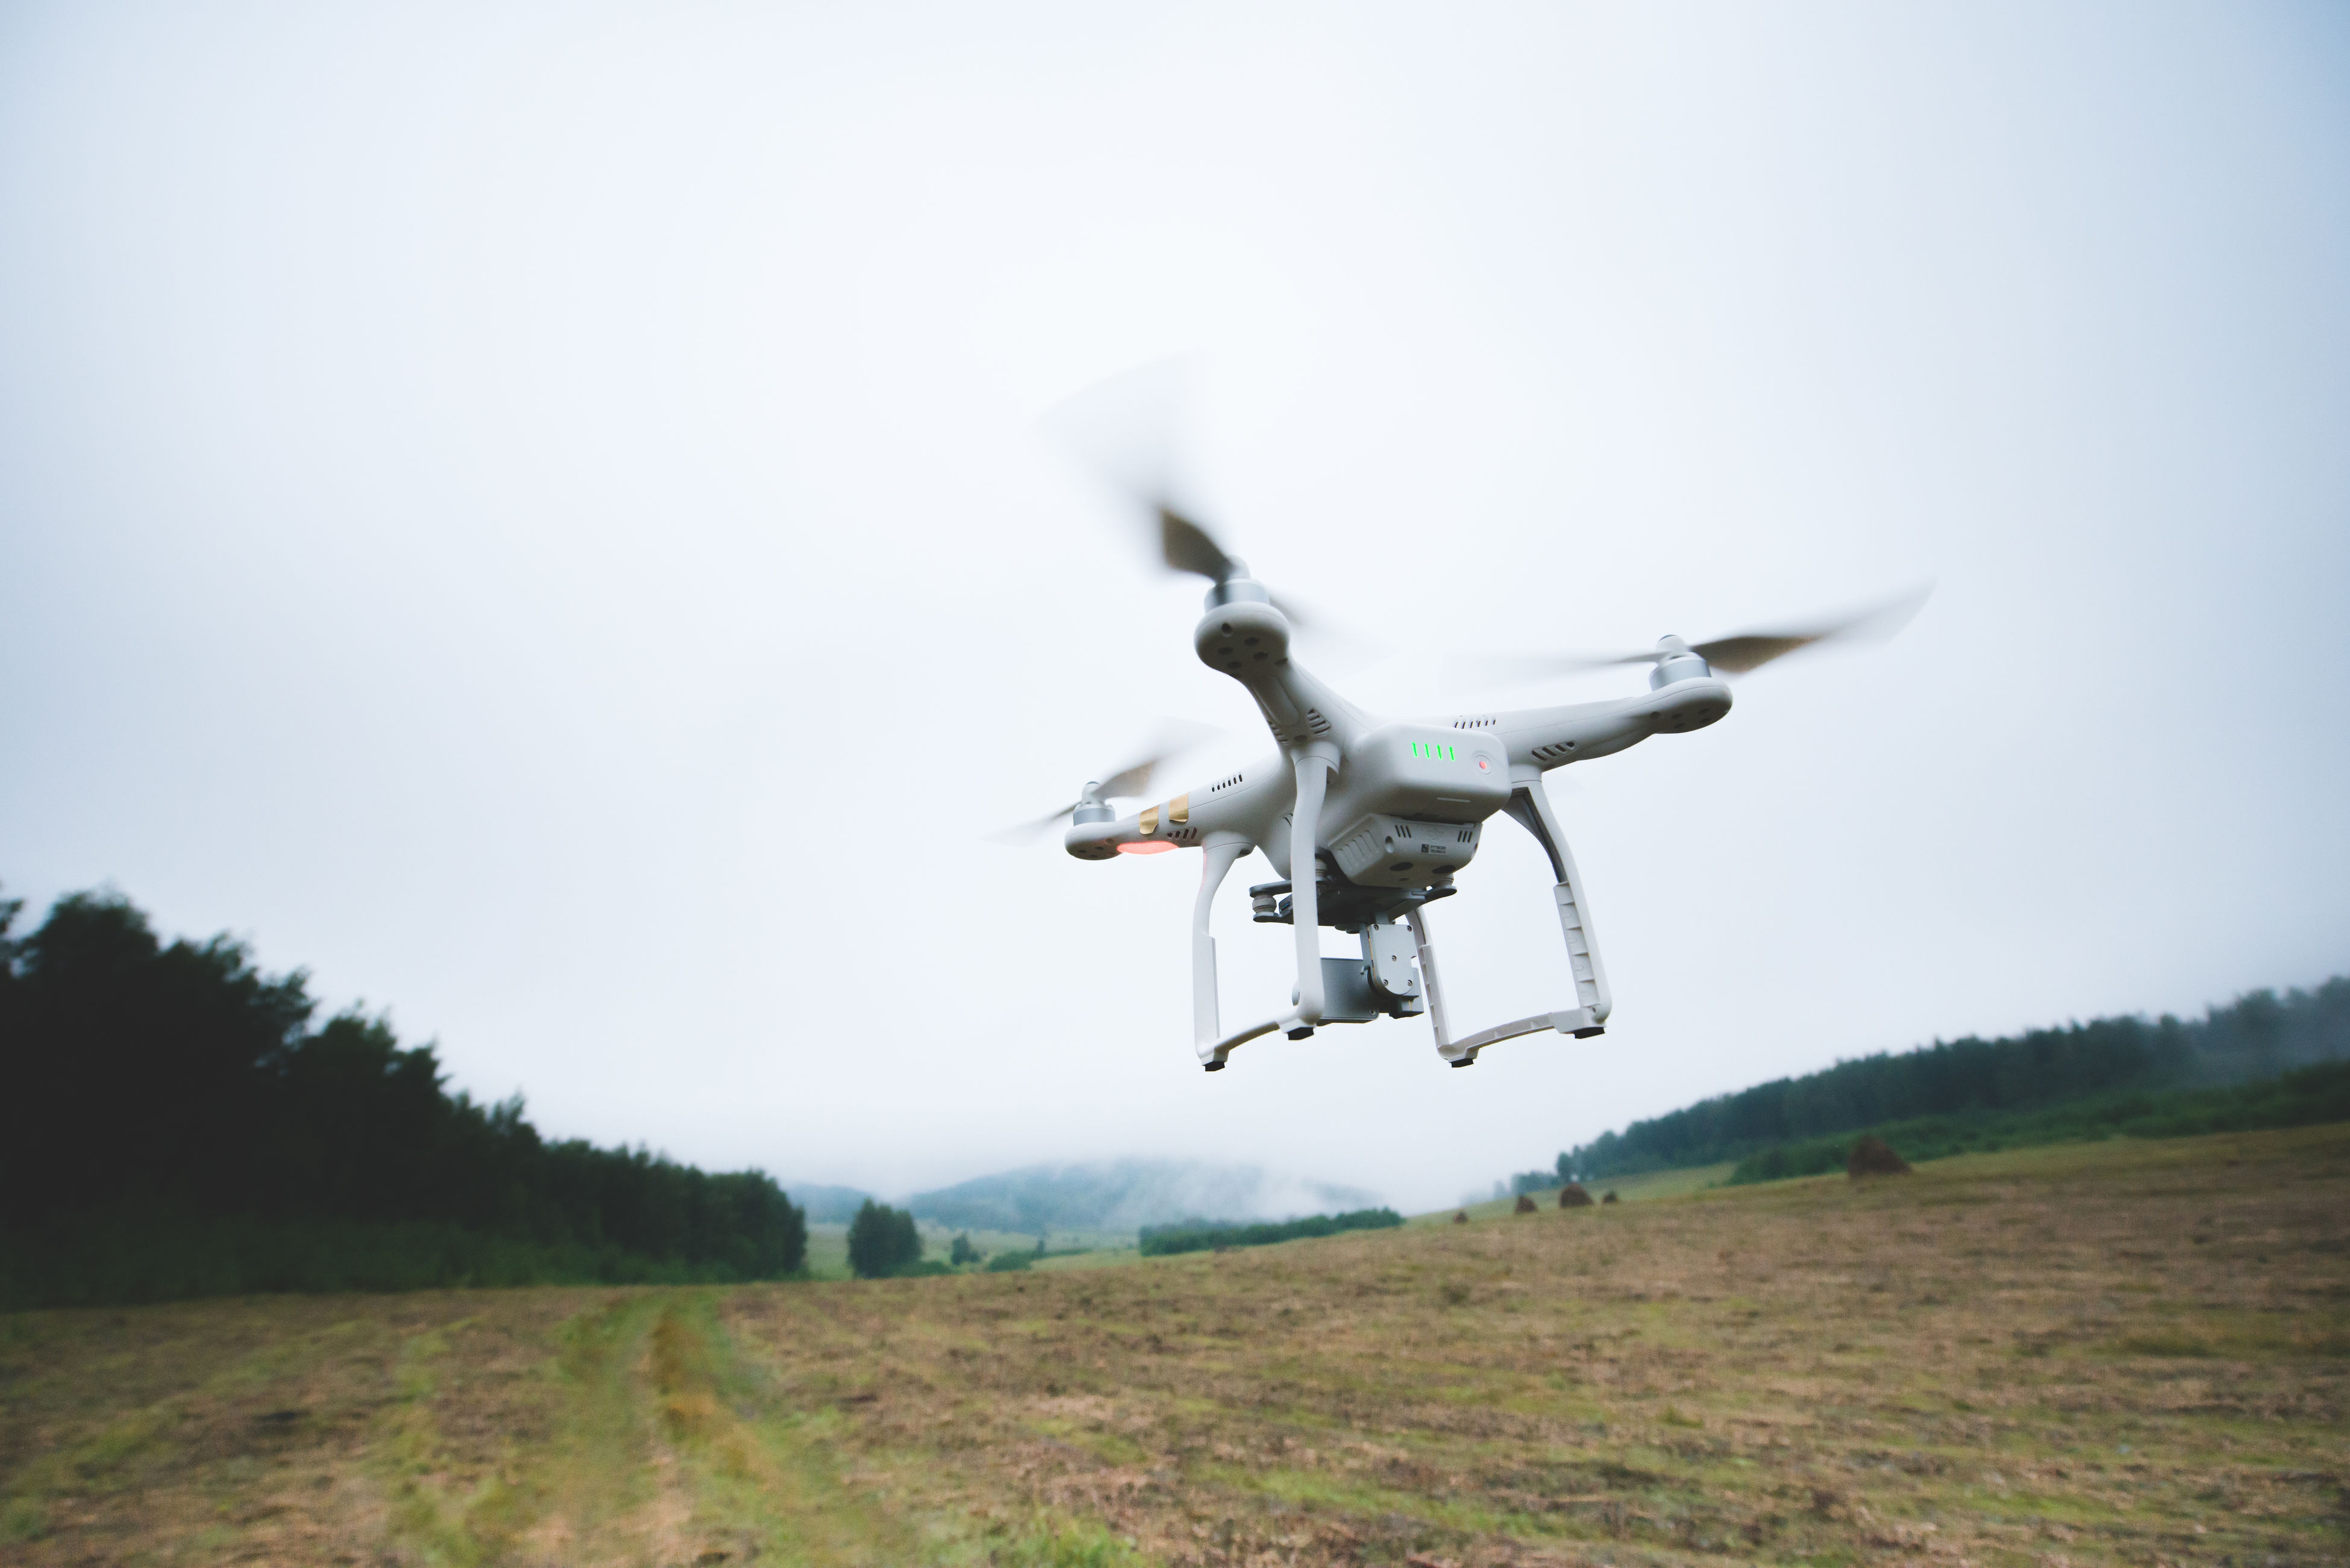 flying, mid-air, field, grass, air vehicle, outdoors, airplane, no people, nature, day, sky, drone